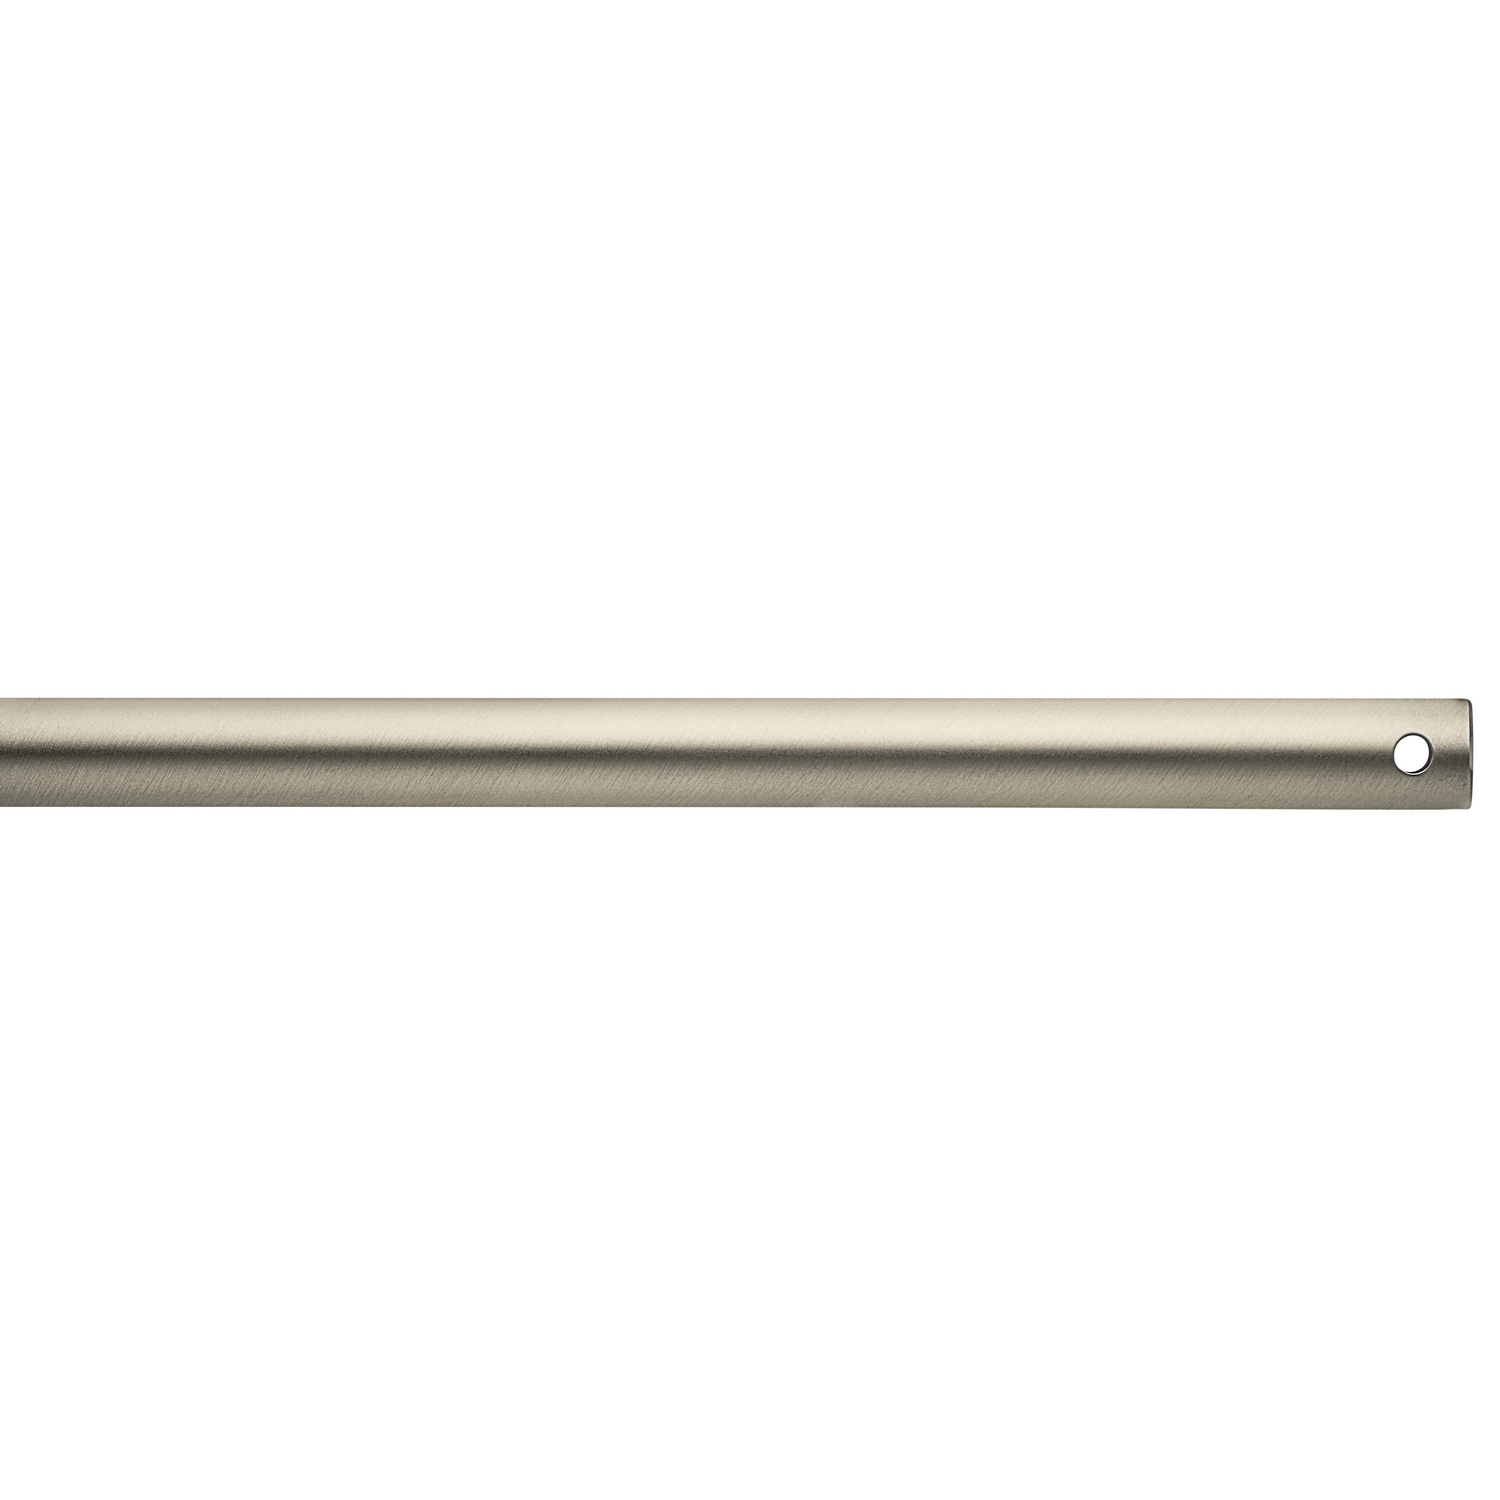 Down Rod from the Basics collection by Kichler 453NI